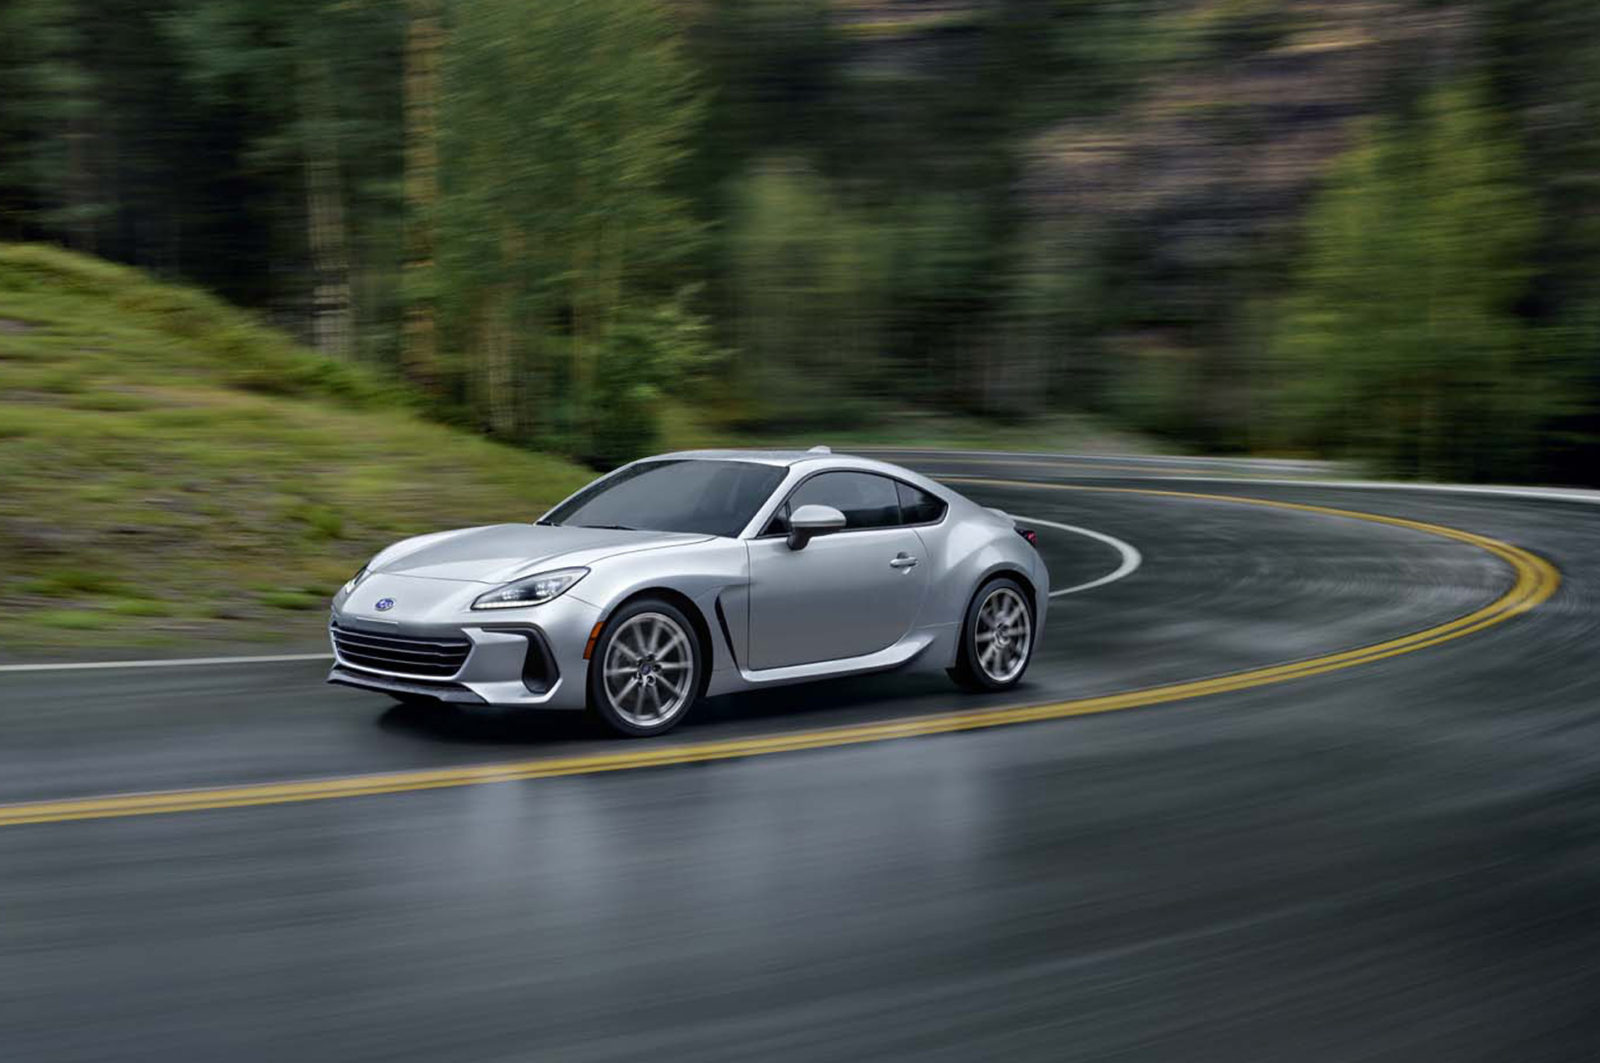 2022-subaru-brz-preview:-no-turbo,-but-more-power-for-$28,955